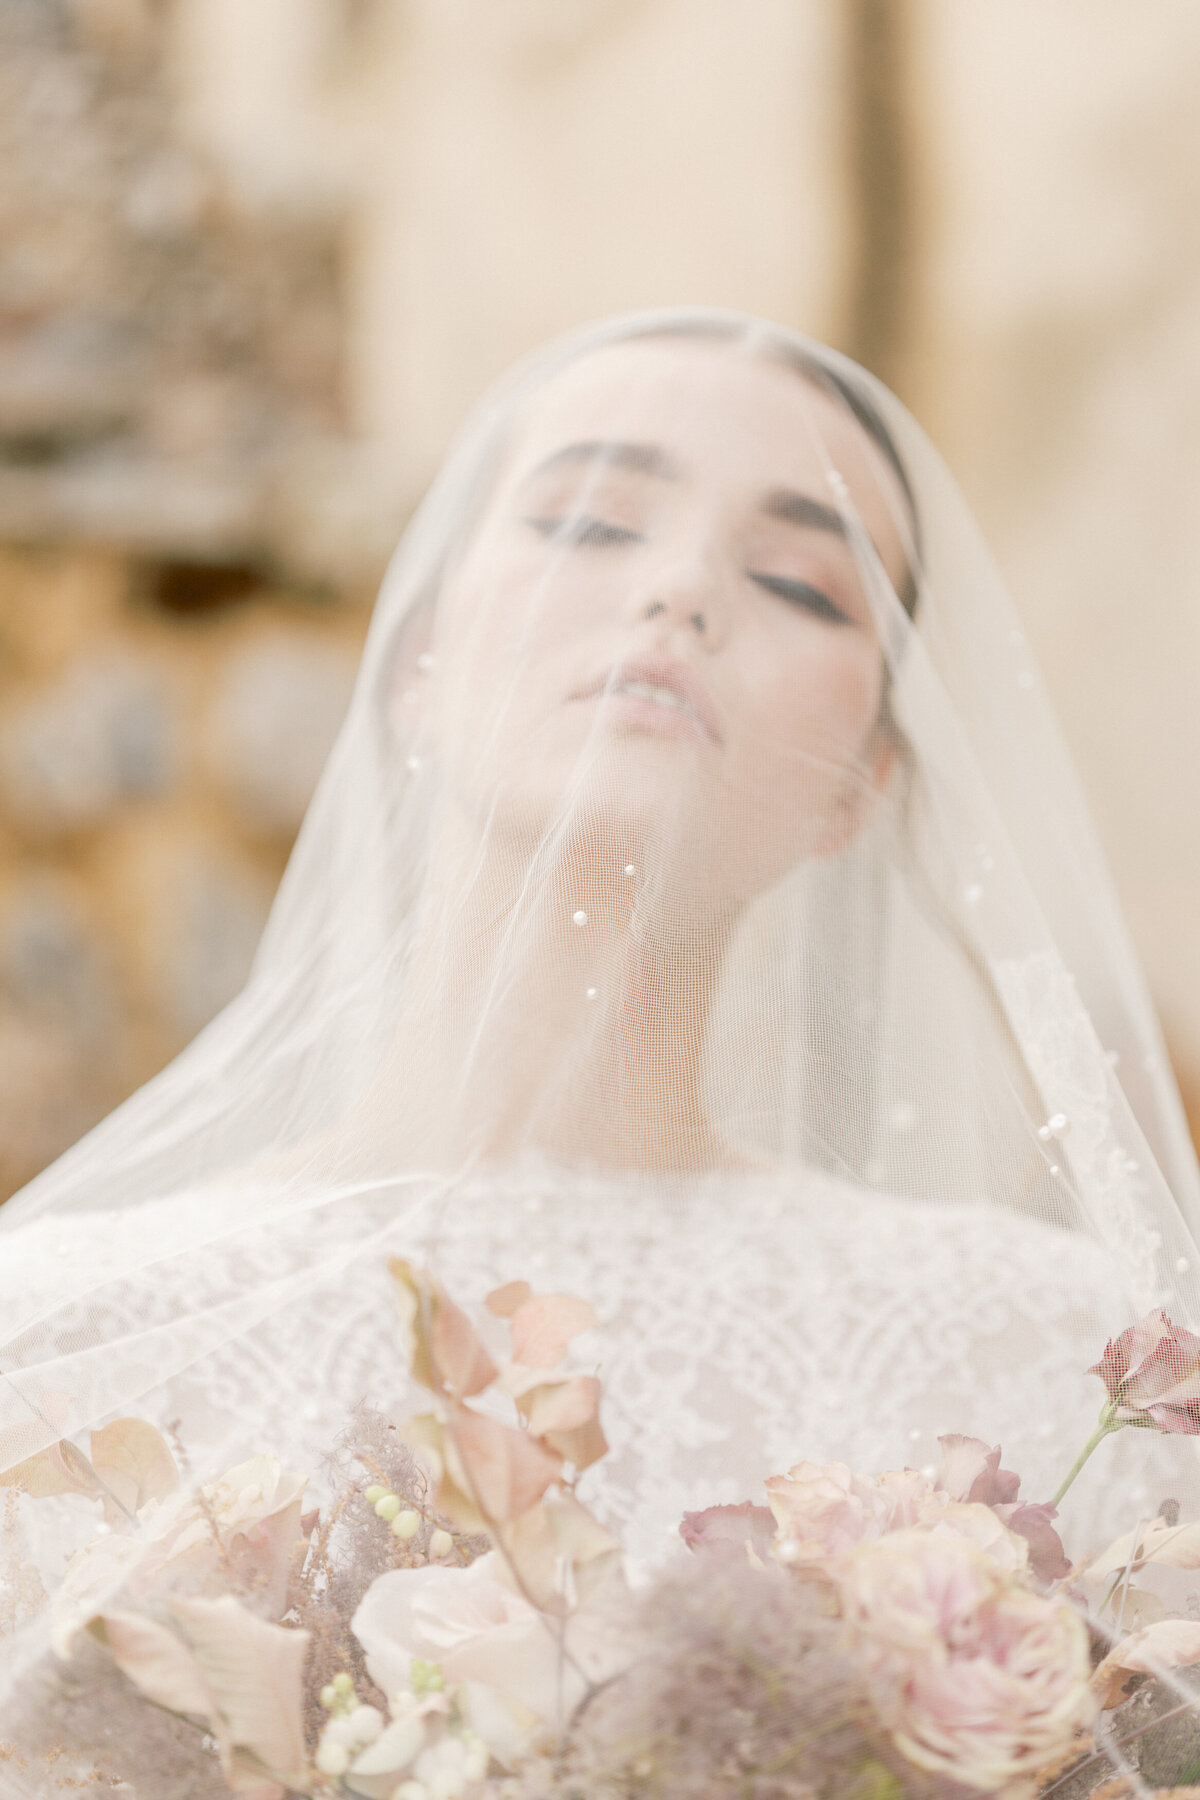 Bridal Portrait Editorial Photoshoot in Greece 15